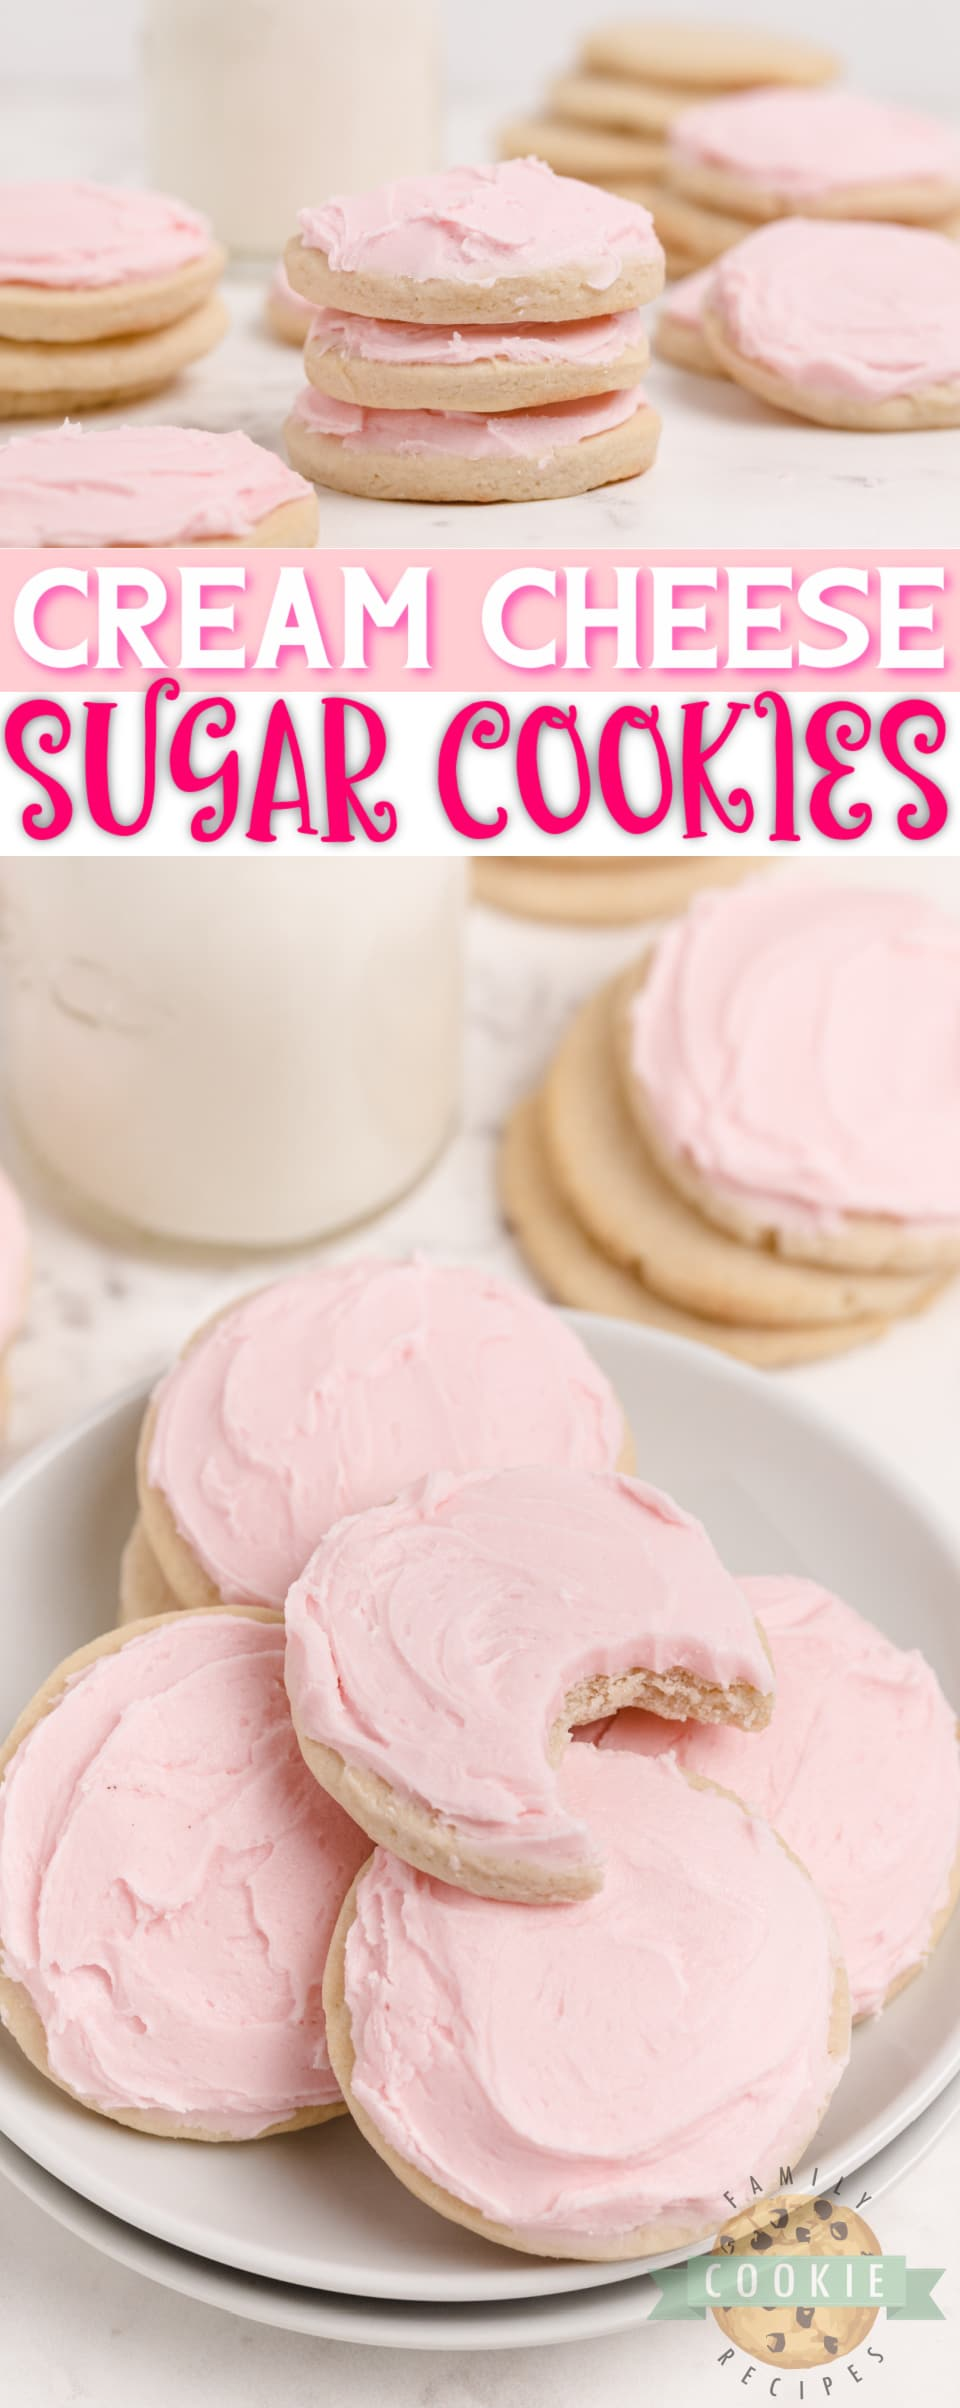 Cream Cheese Sugar Cookies are soft, thick and easily the best sugar cookie recipe I've ever tried. These sugar cookies hold their shape when baked and they are moist and perfectly sweet too! via @familycookierecipes